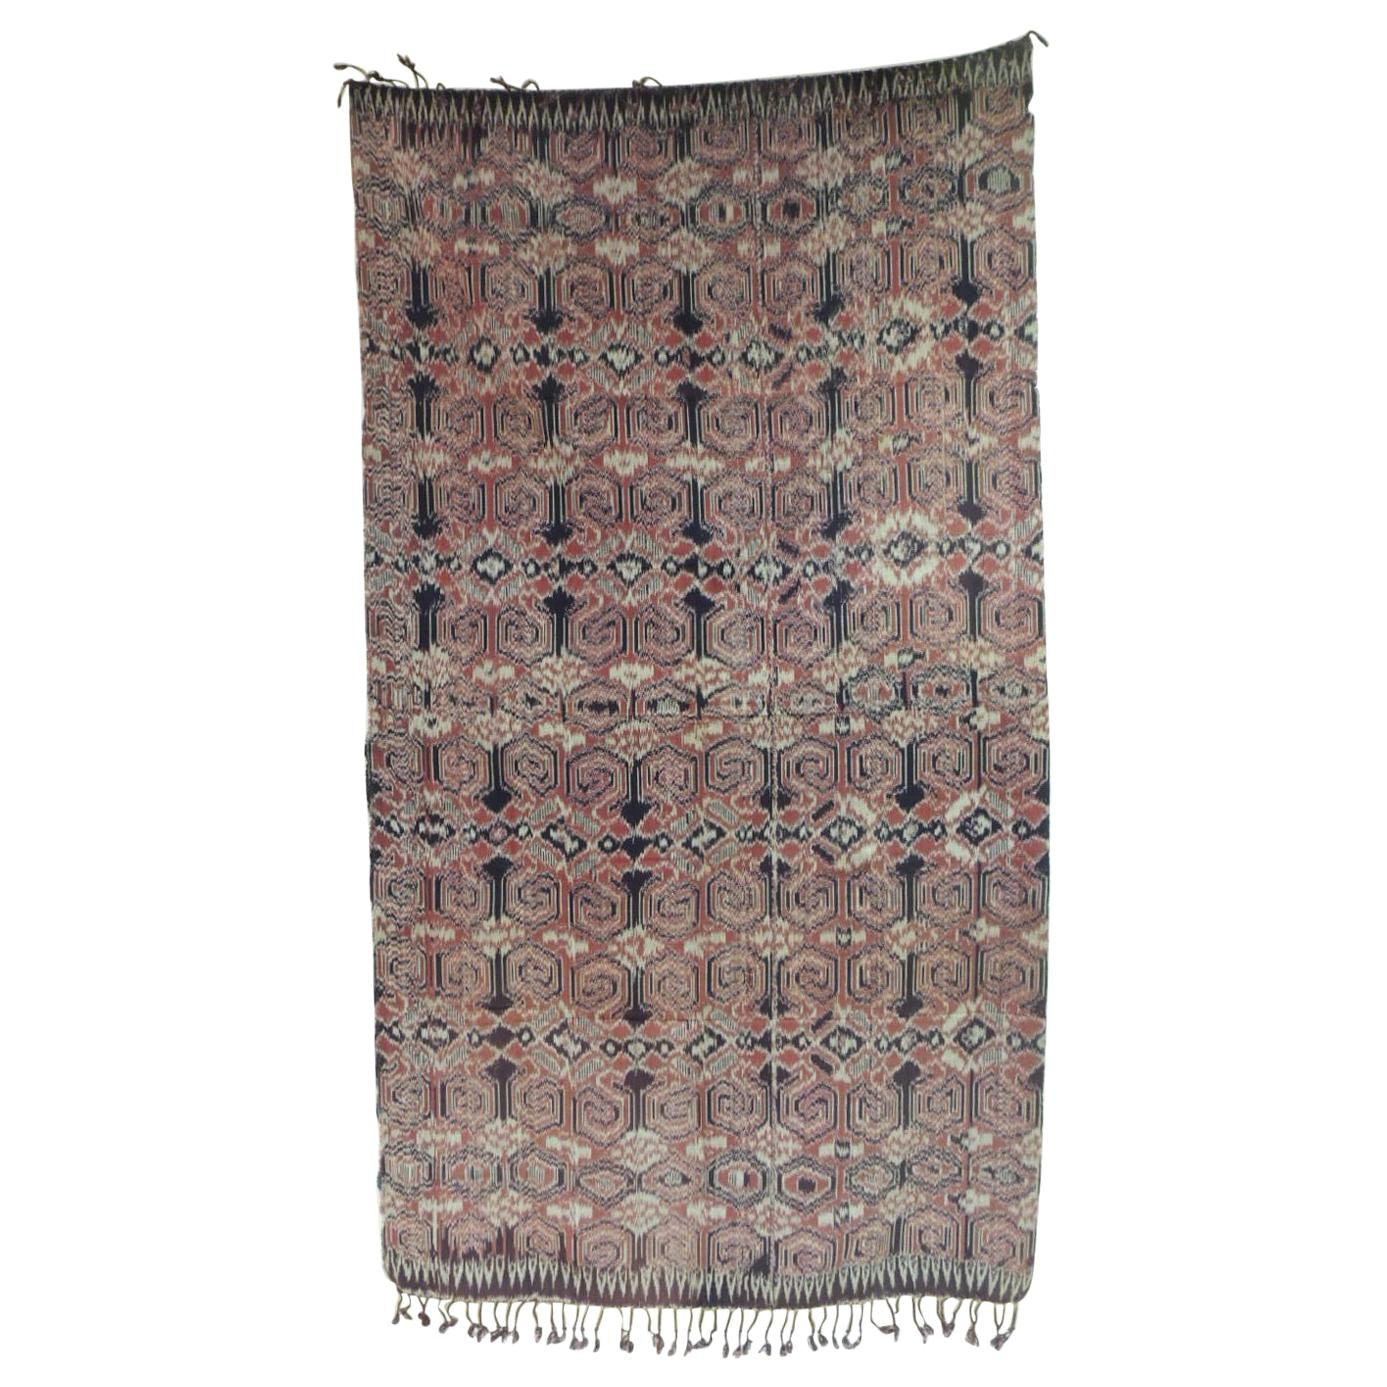 Large Vintage Woven Red Ikat Tribal Pattern Textile Panel with Fringes